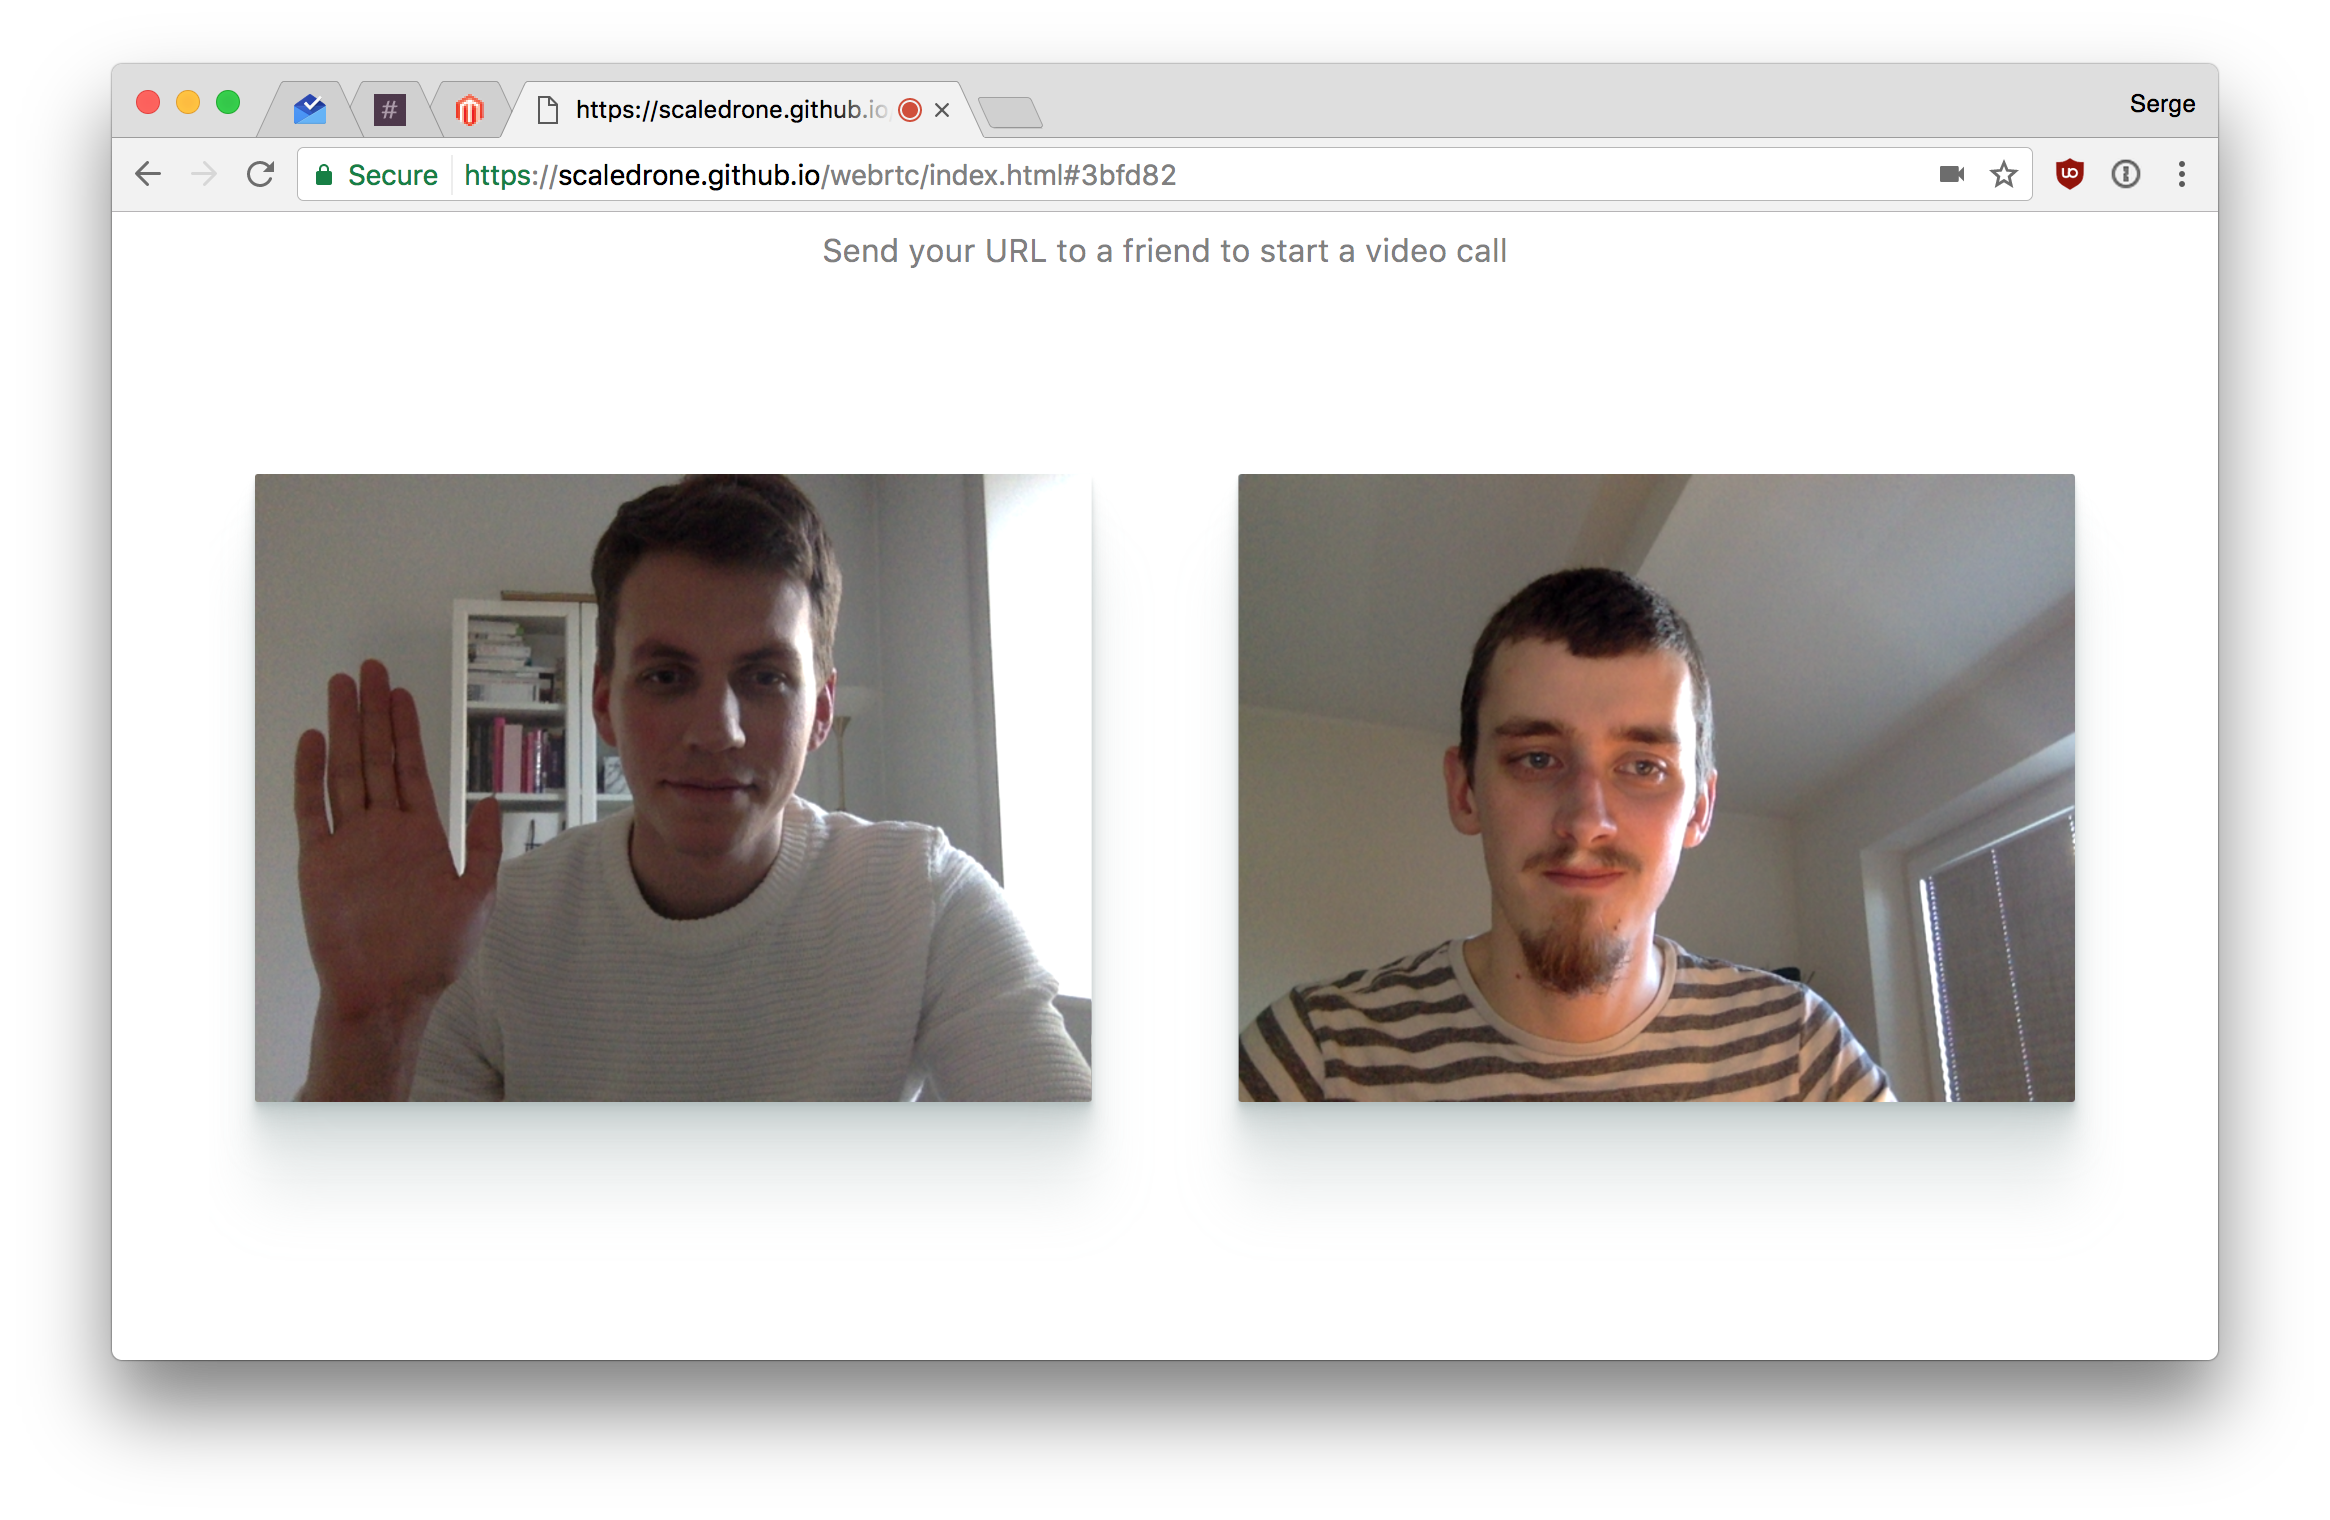 WebRTC Tutorial: Simple video chat